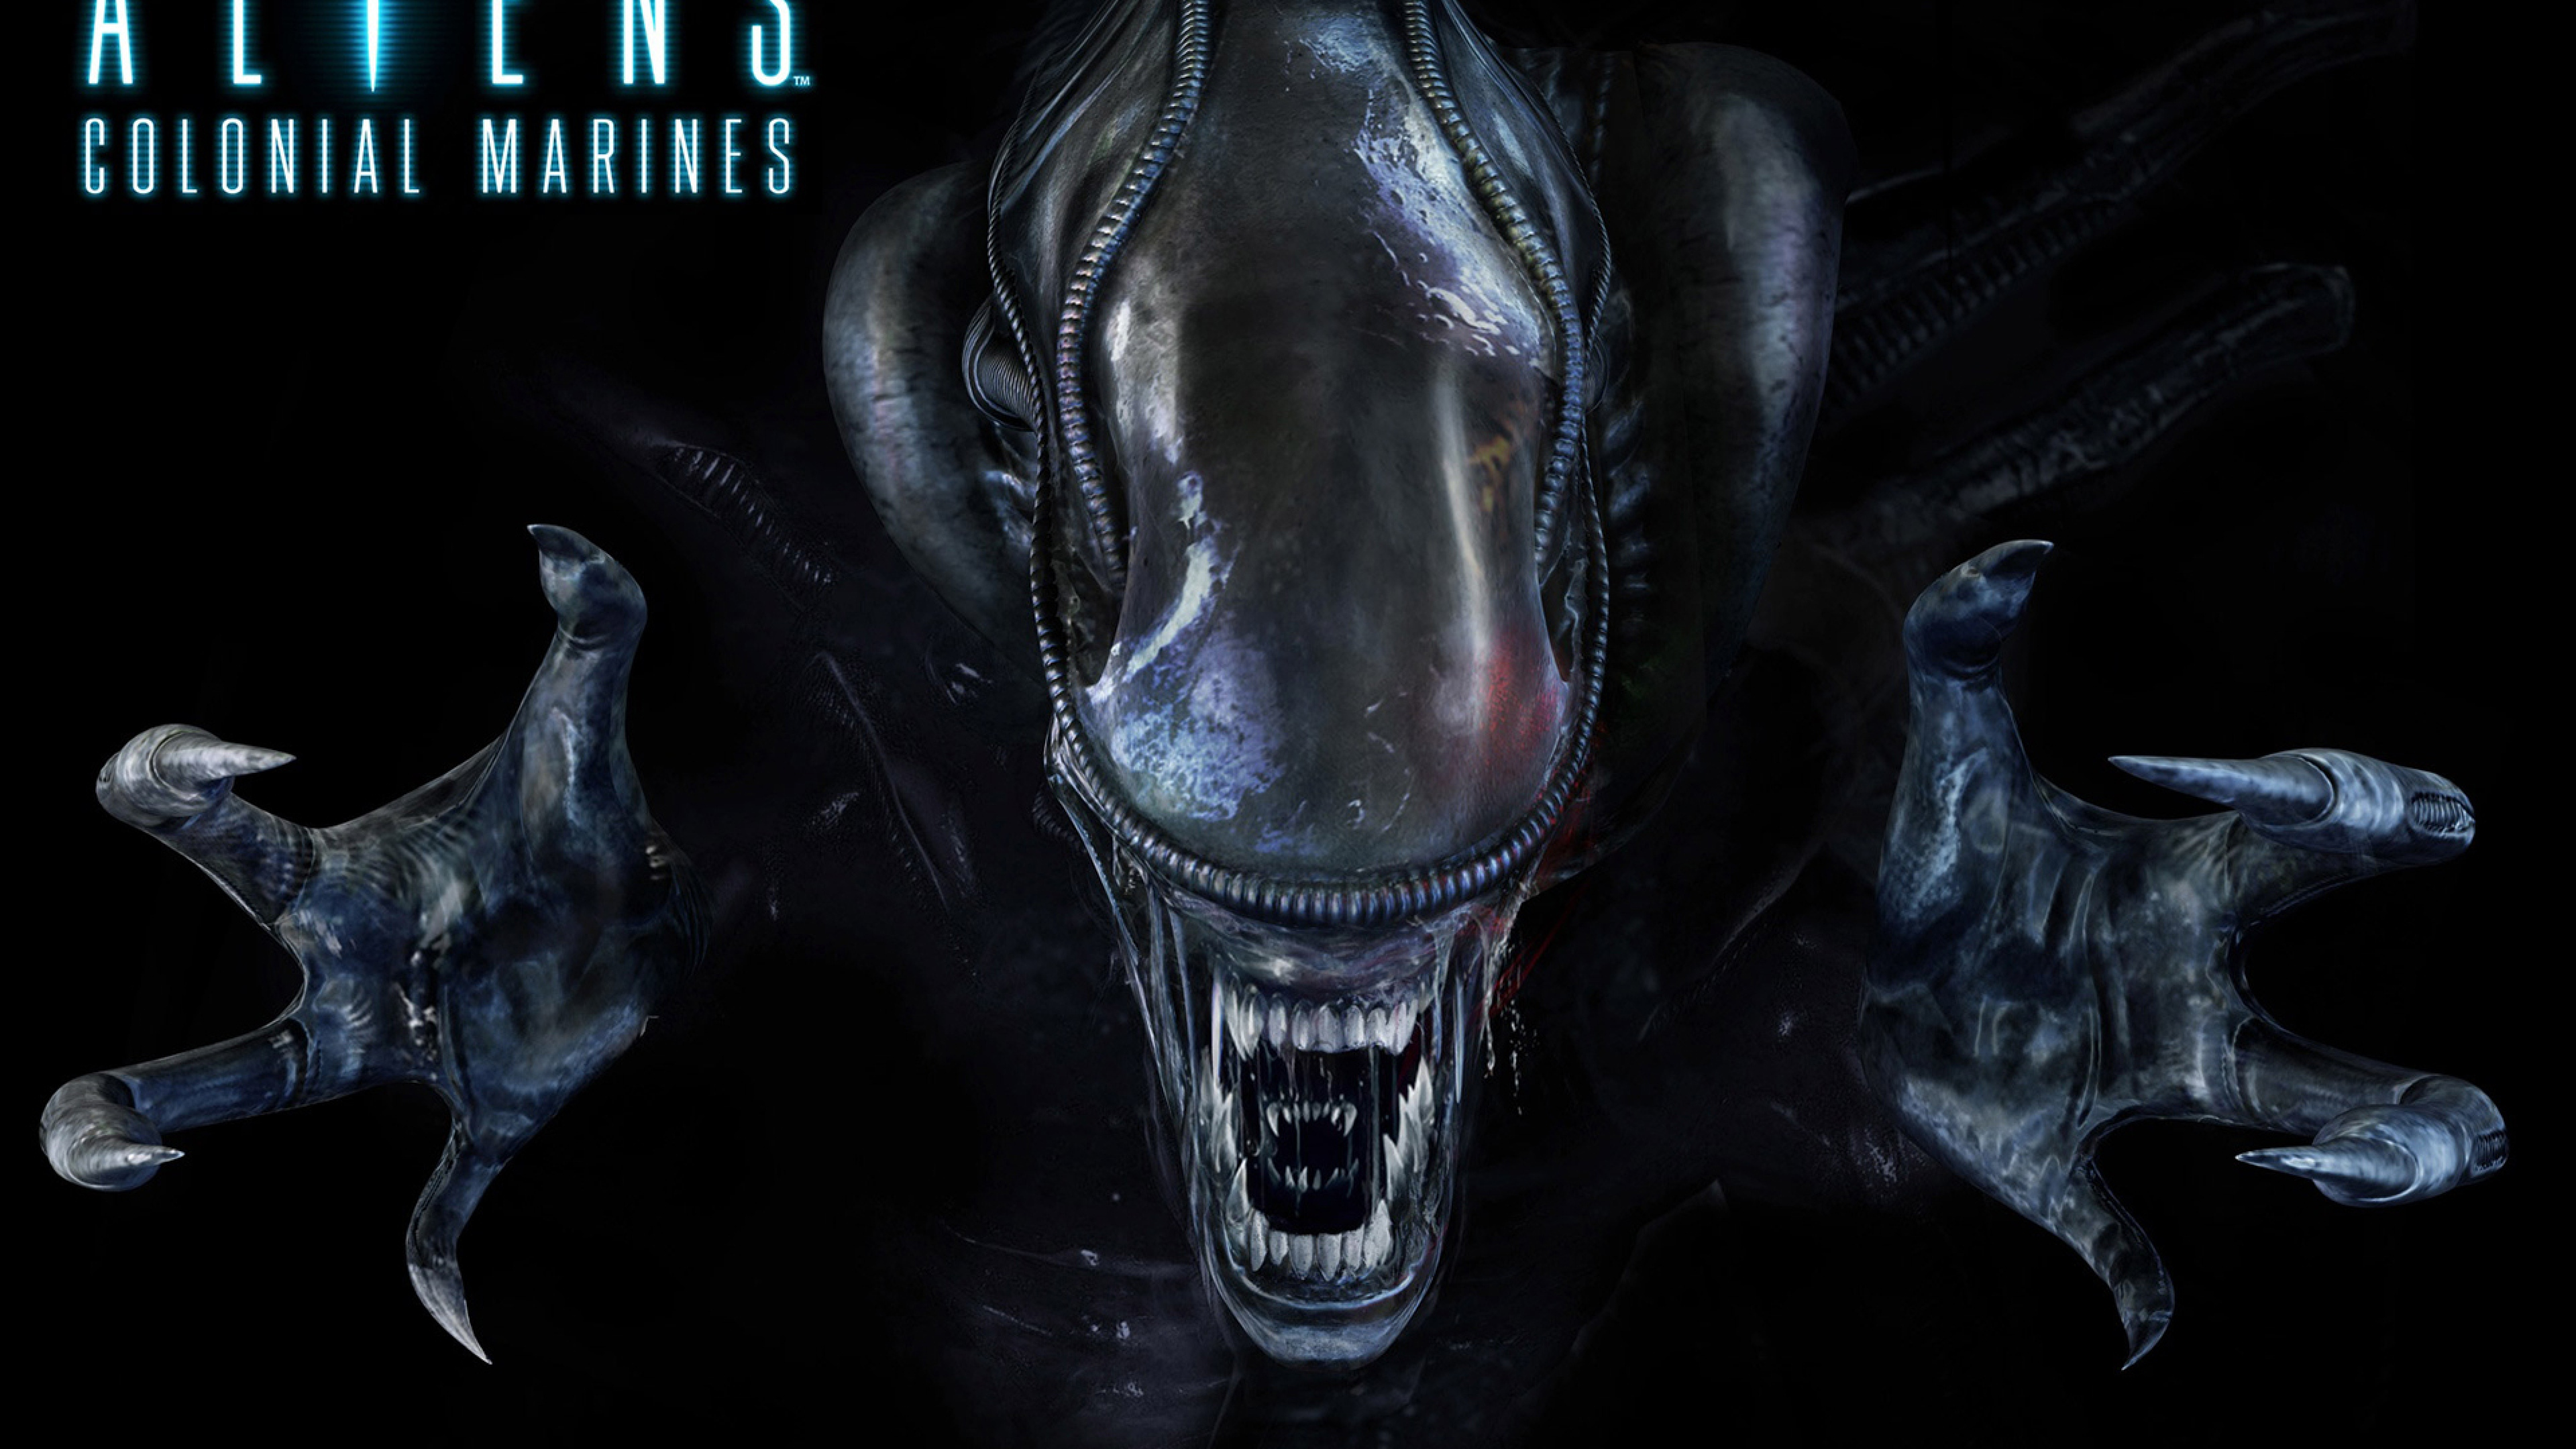 Alien HQ Definition Wallpaper | Online Dream Book Dreamicus.com